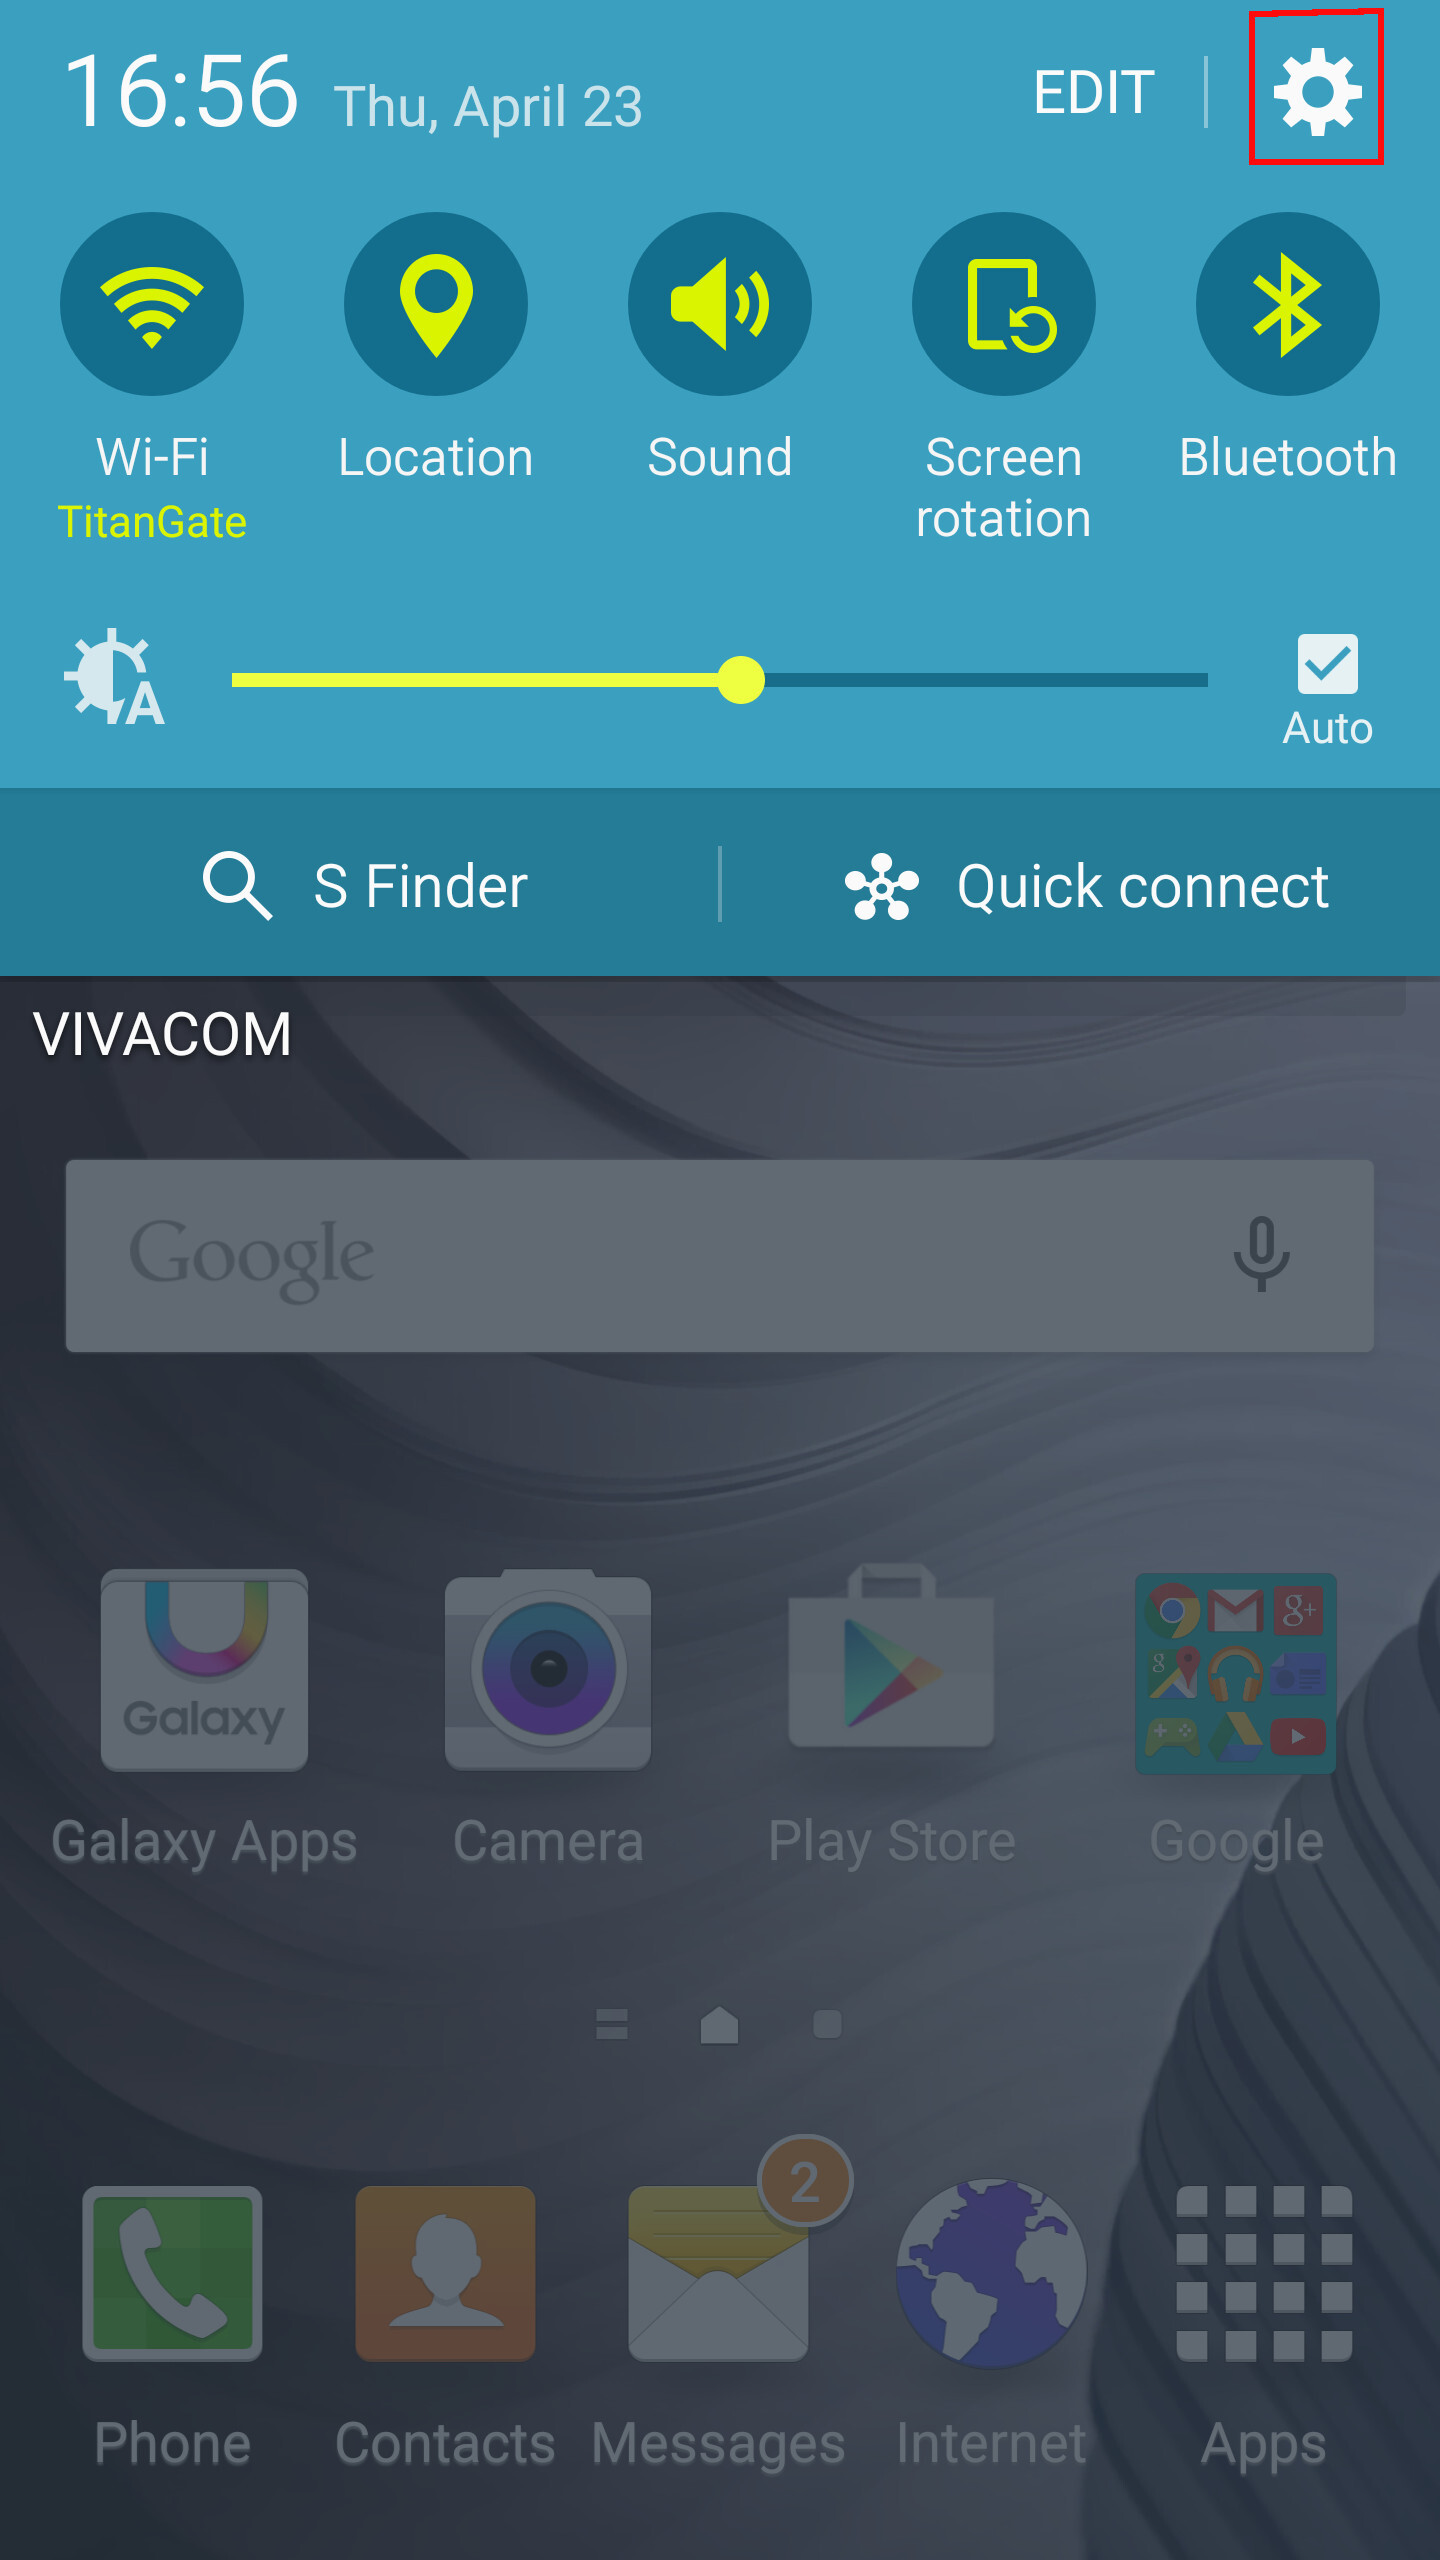 How To Send A File Via Bluetooth On Android (samsung Galaxy S6 Tutorial)